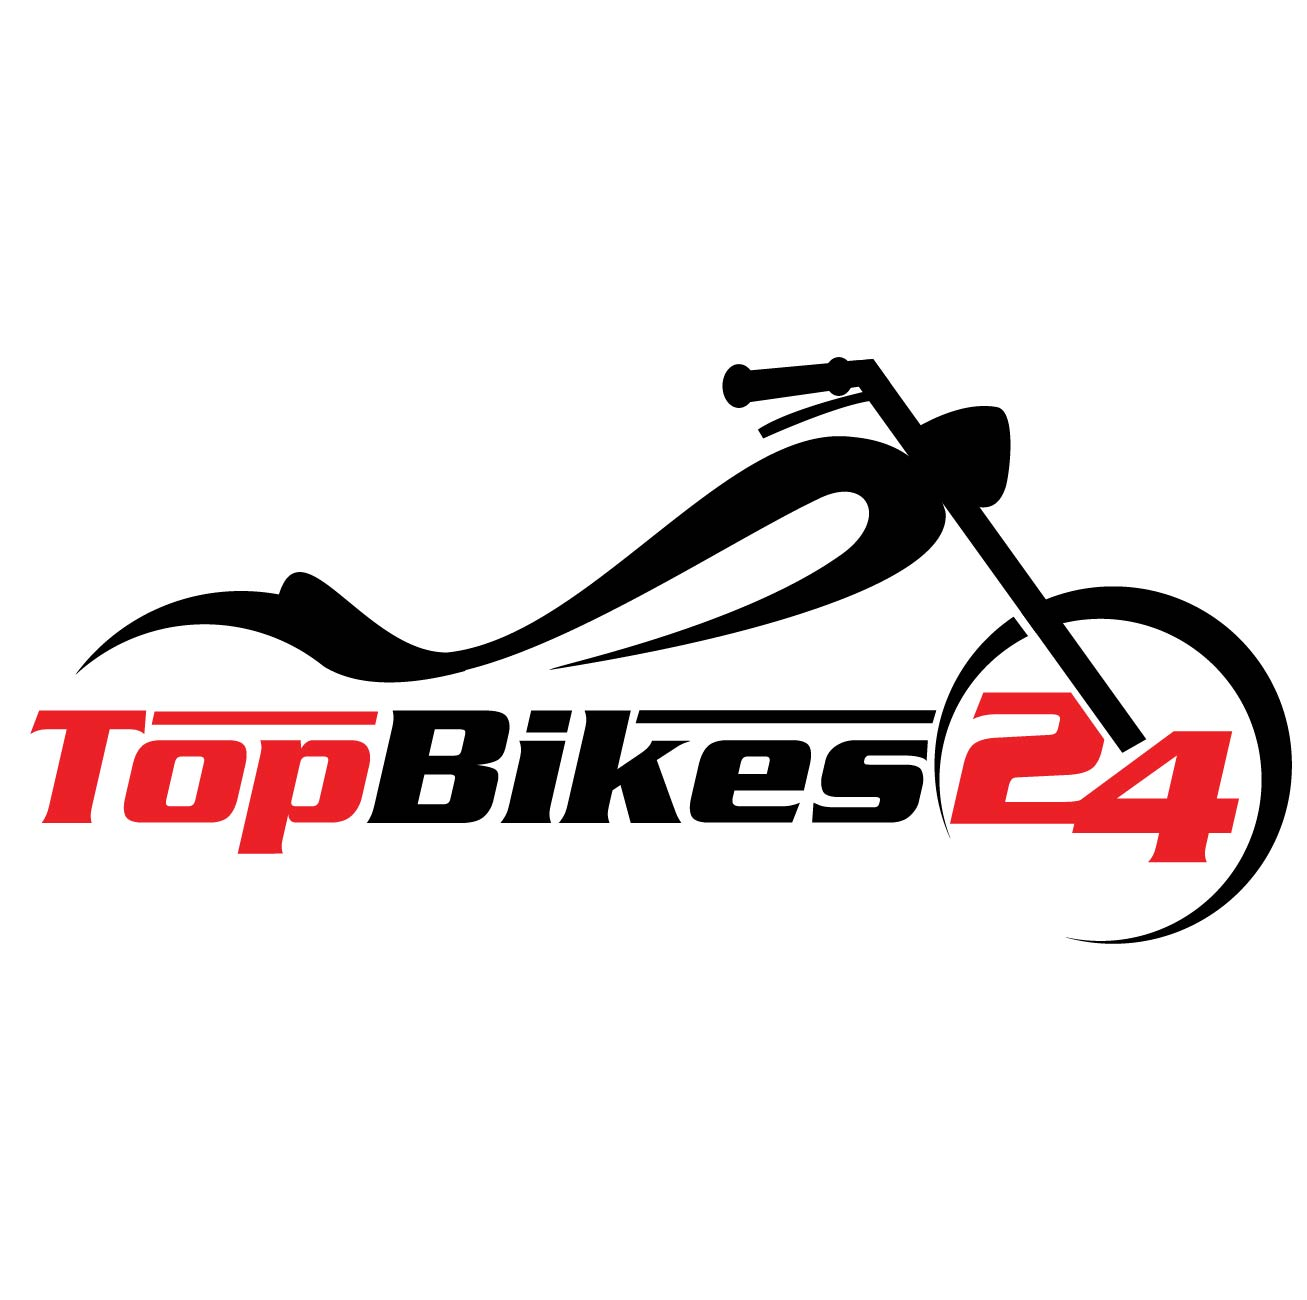 Top Bikes background white